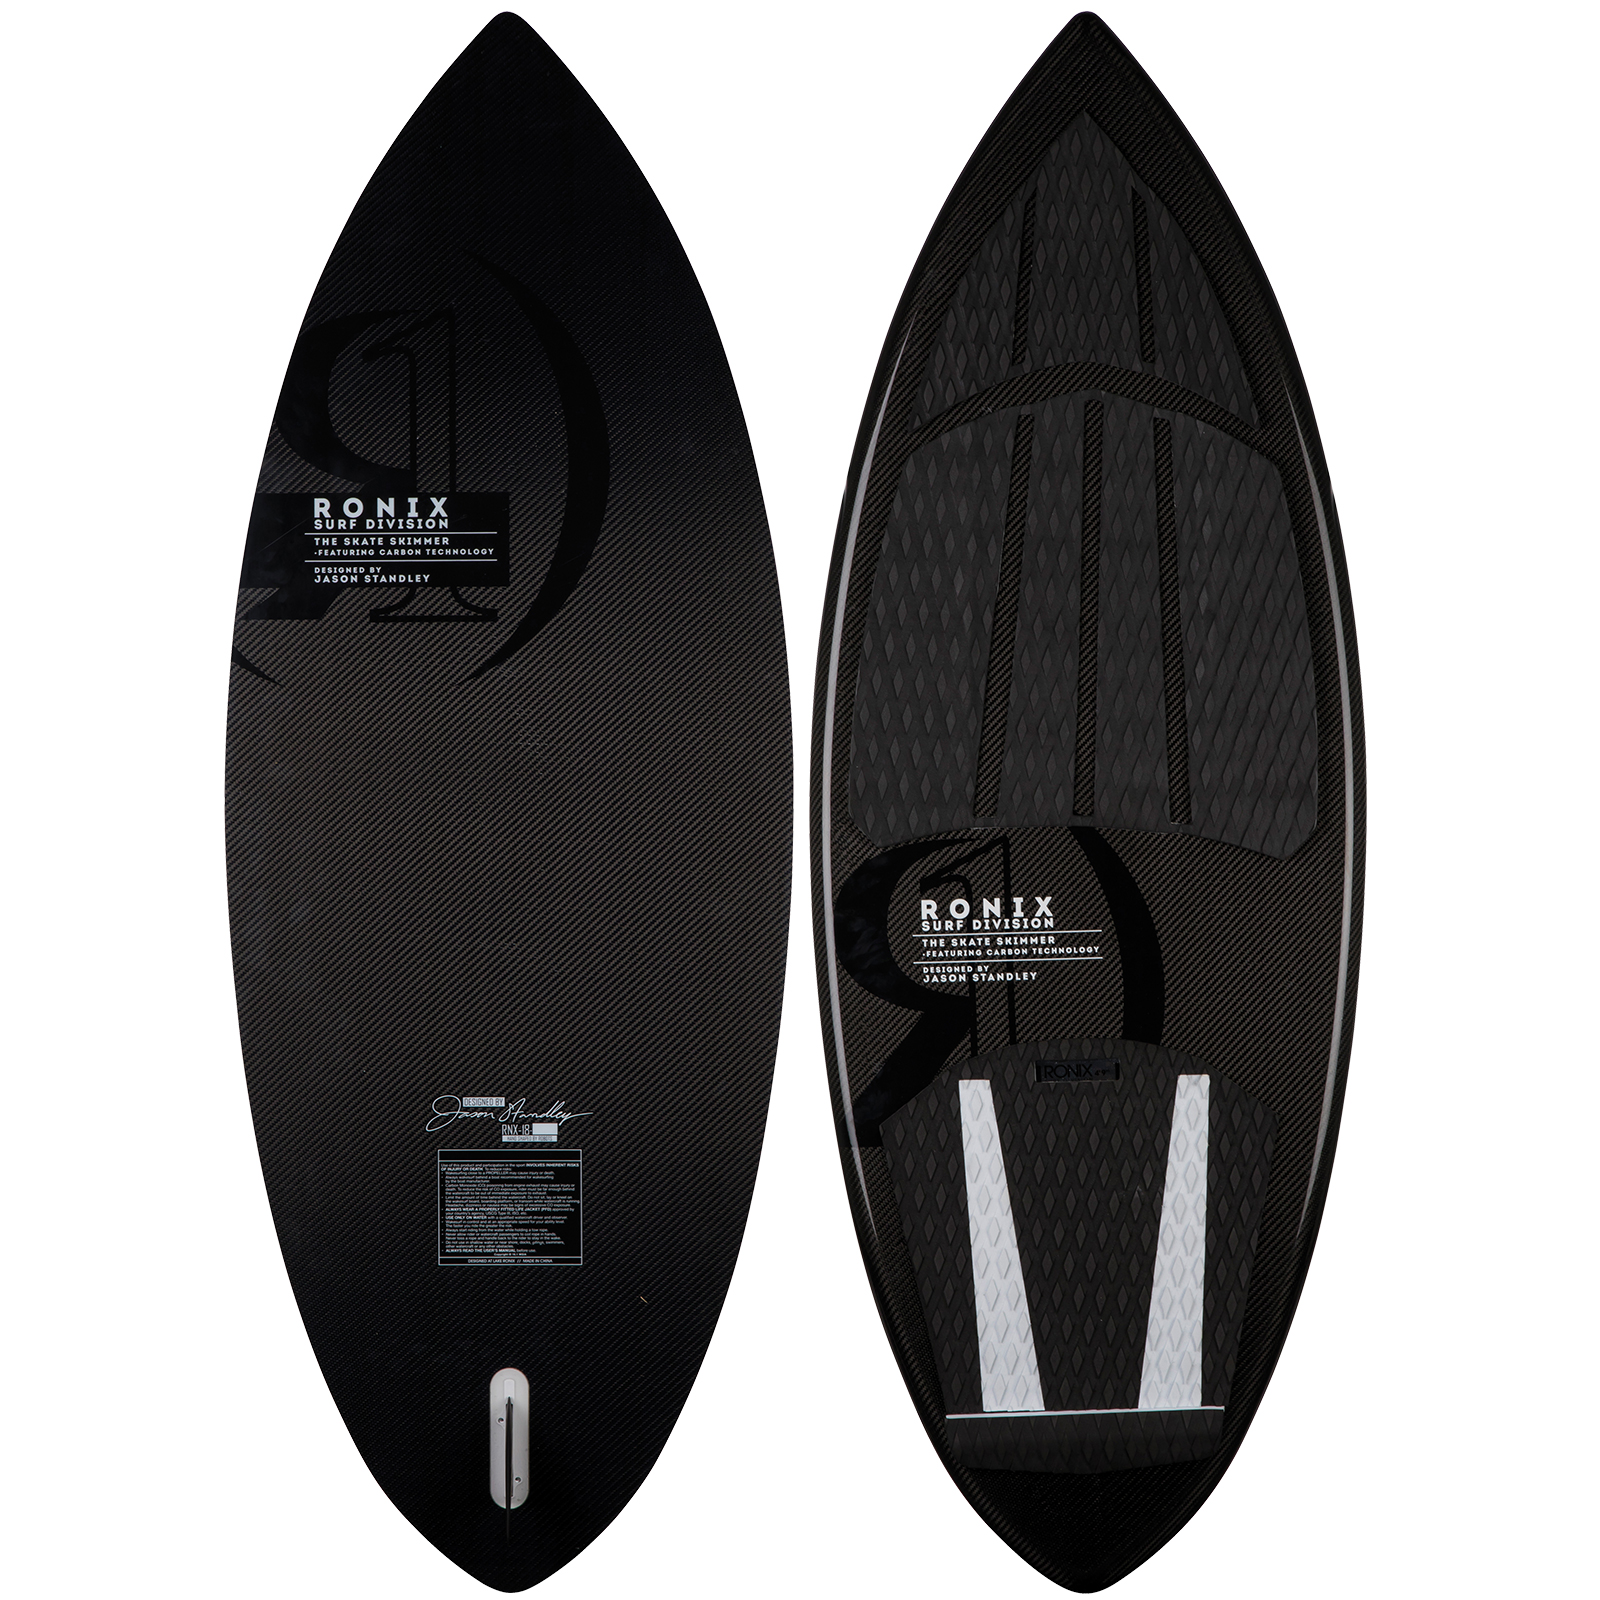 SKIMMER CARBON AIR CORE WAKESURFER RONIX 2018